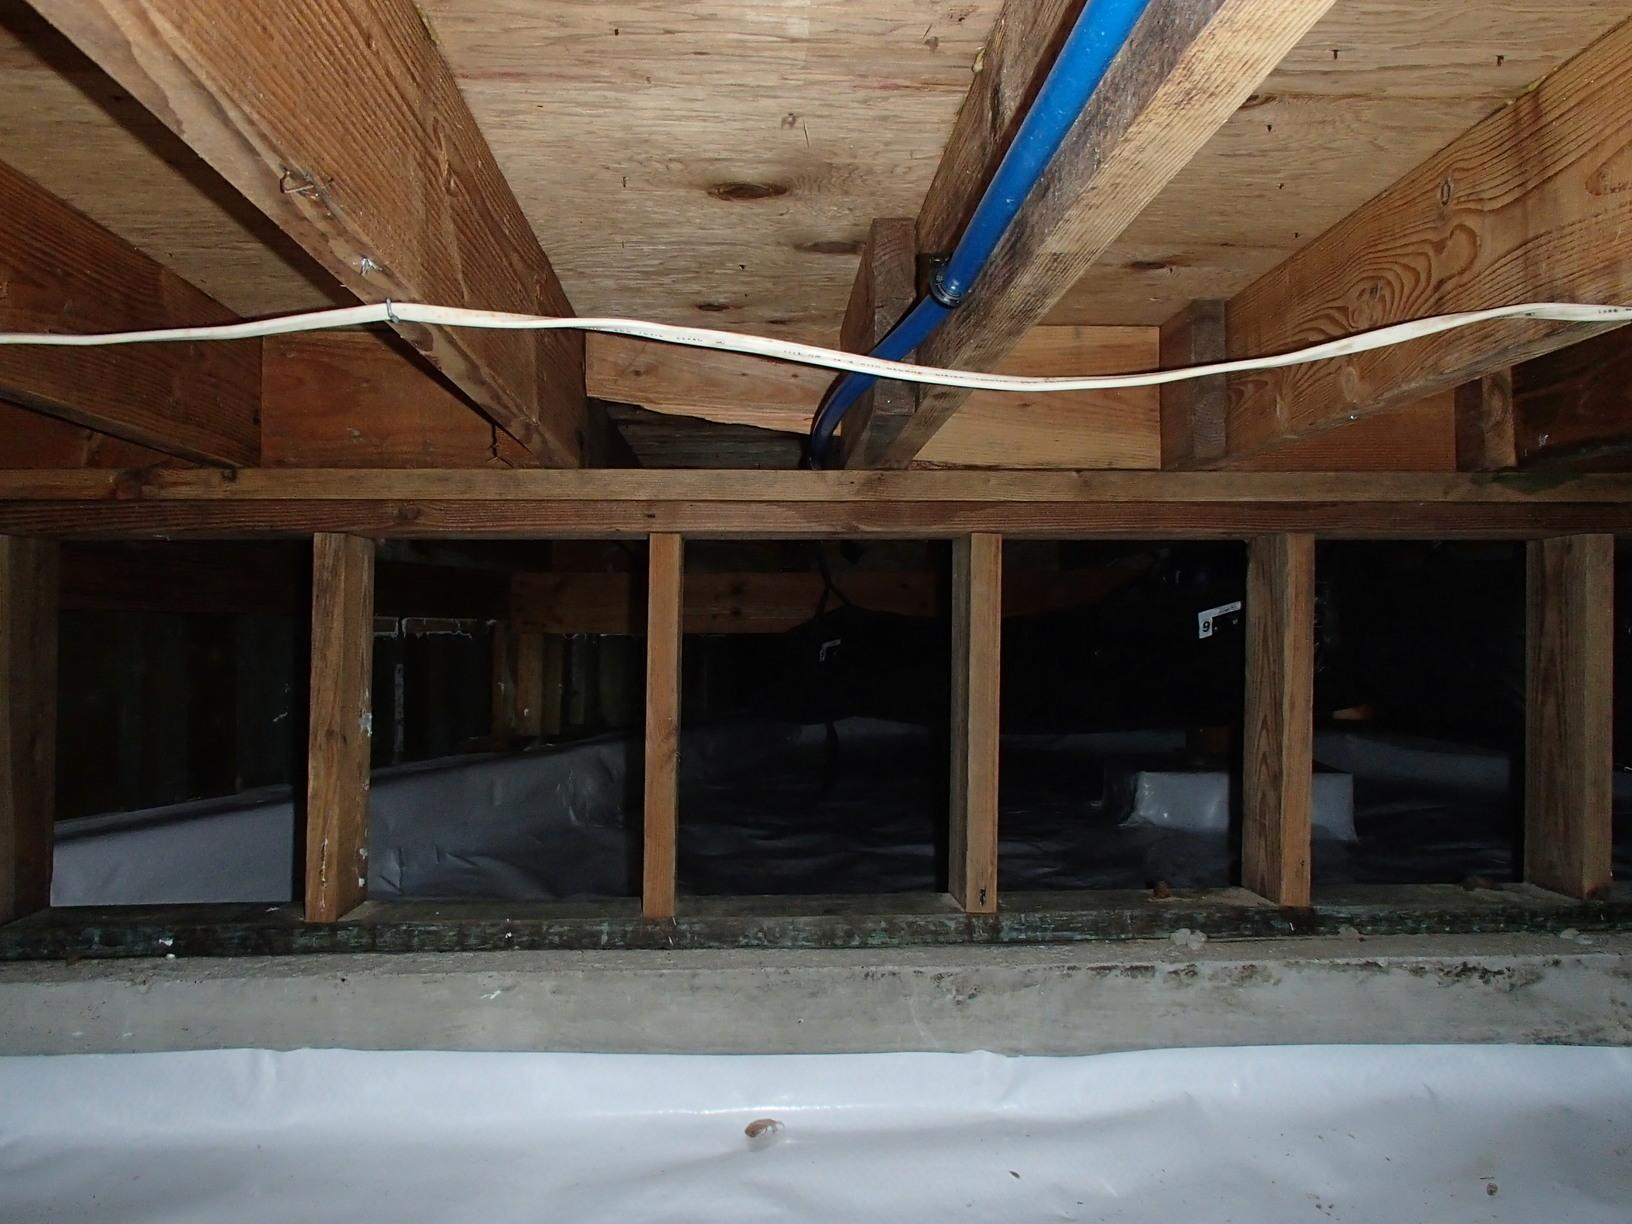 Clinton Crawl Space Encapsulation - After Photo